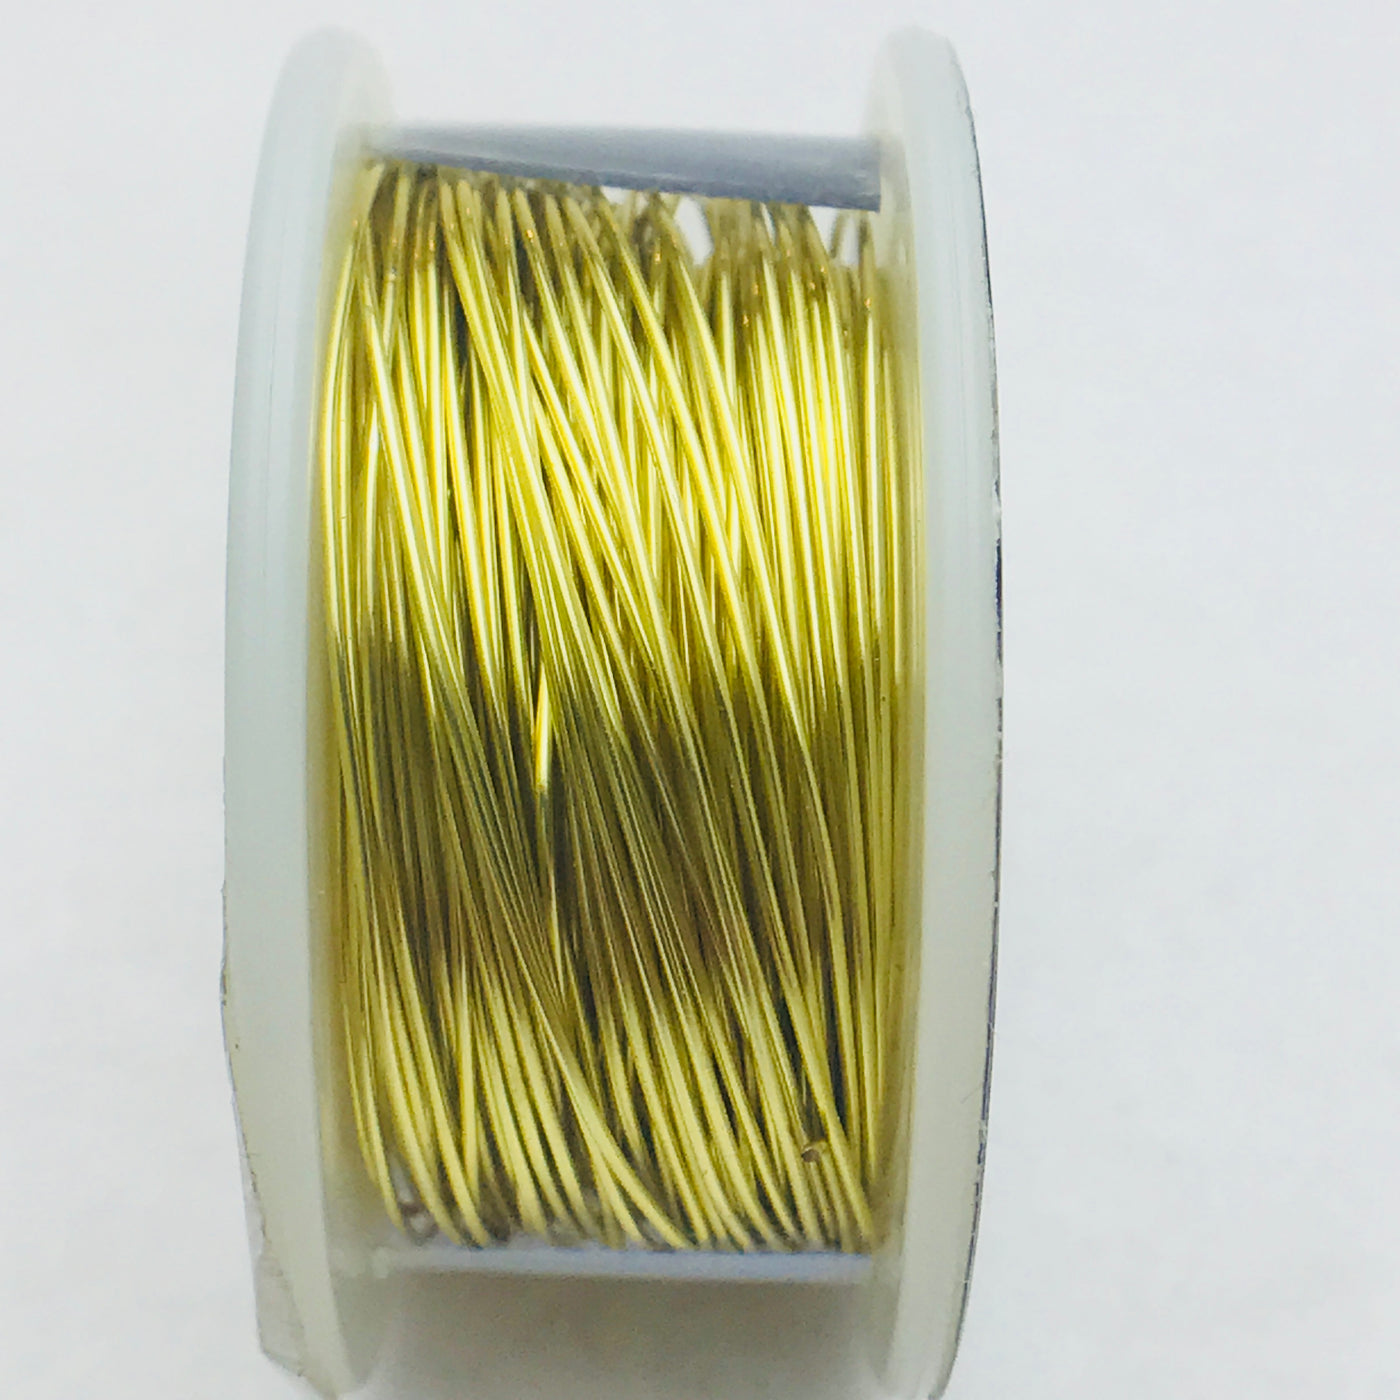 18 Gauge Silver or Gold Colored Craft Wire Colored Copper Wire 10 Yards fnt